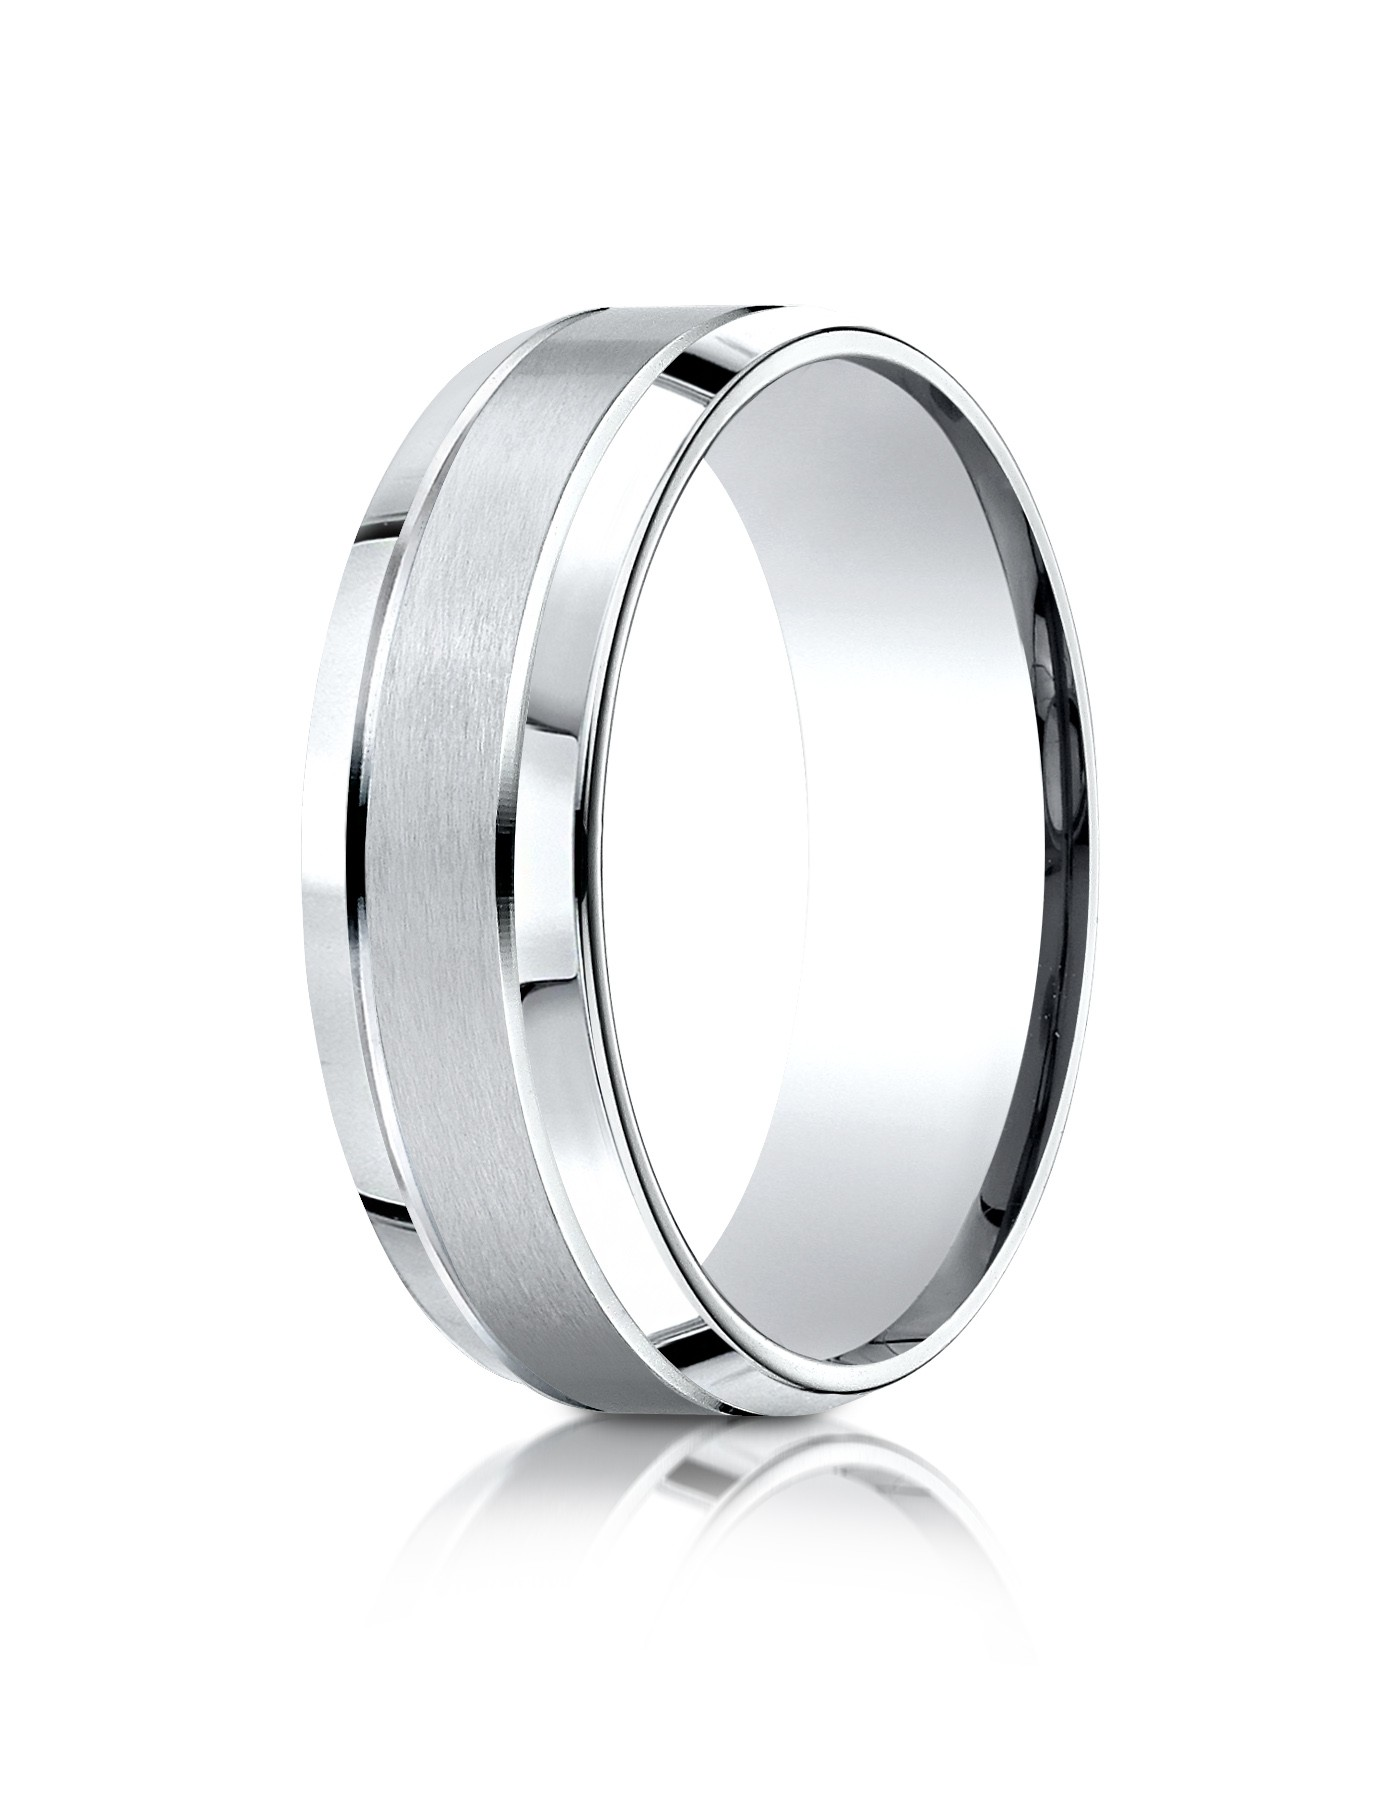 14k White Gold 7mm Comfort-fit Satin-finished High Polished Beveled Edge Carved Design Band